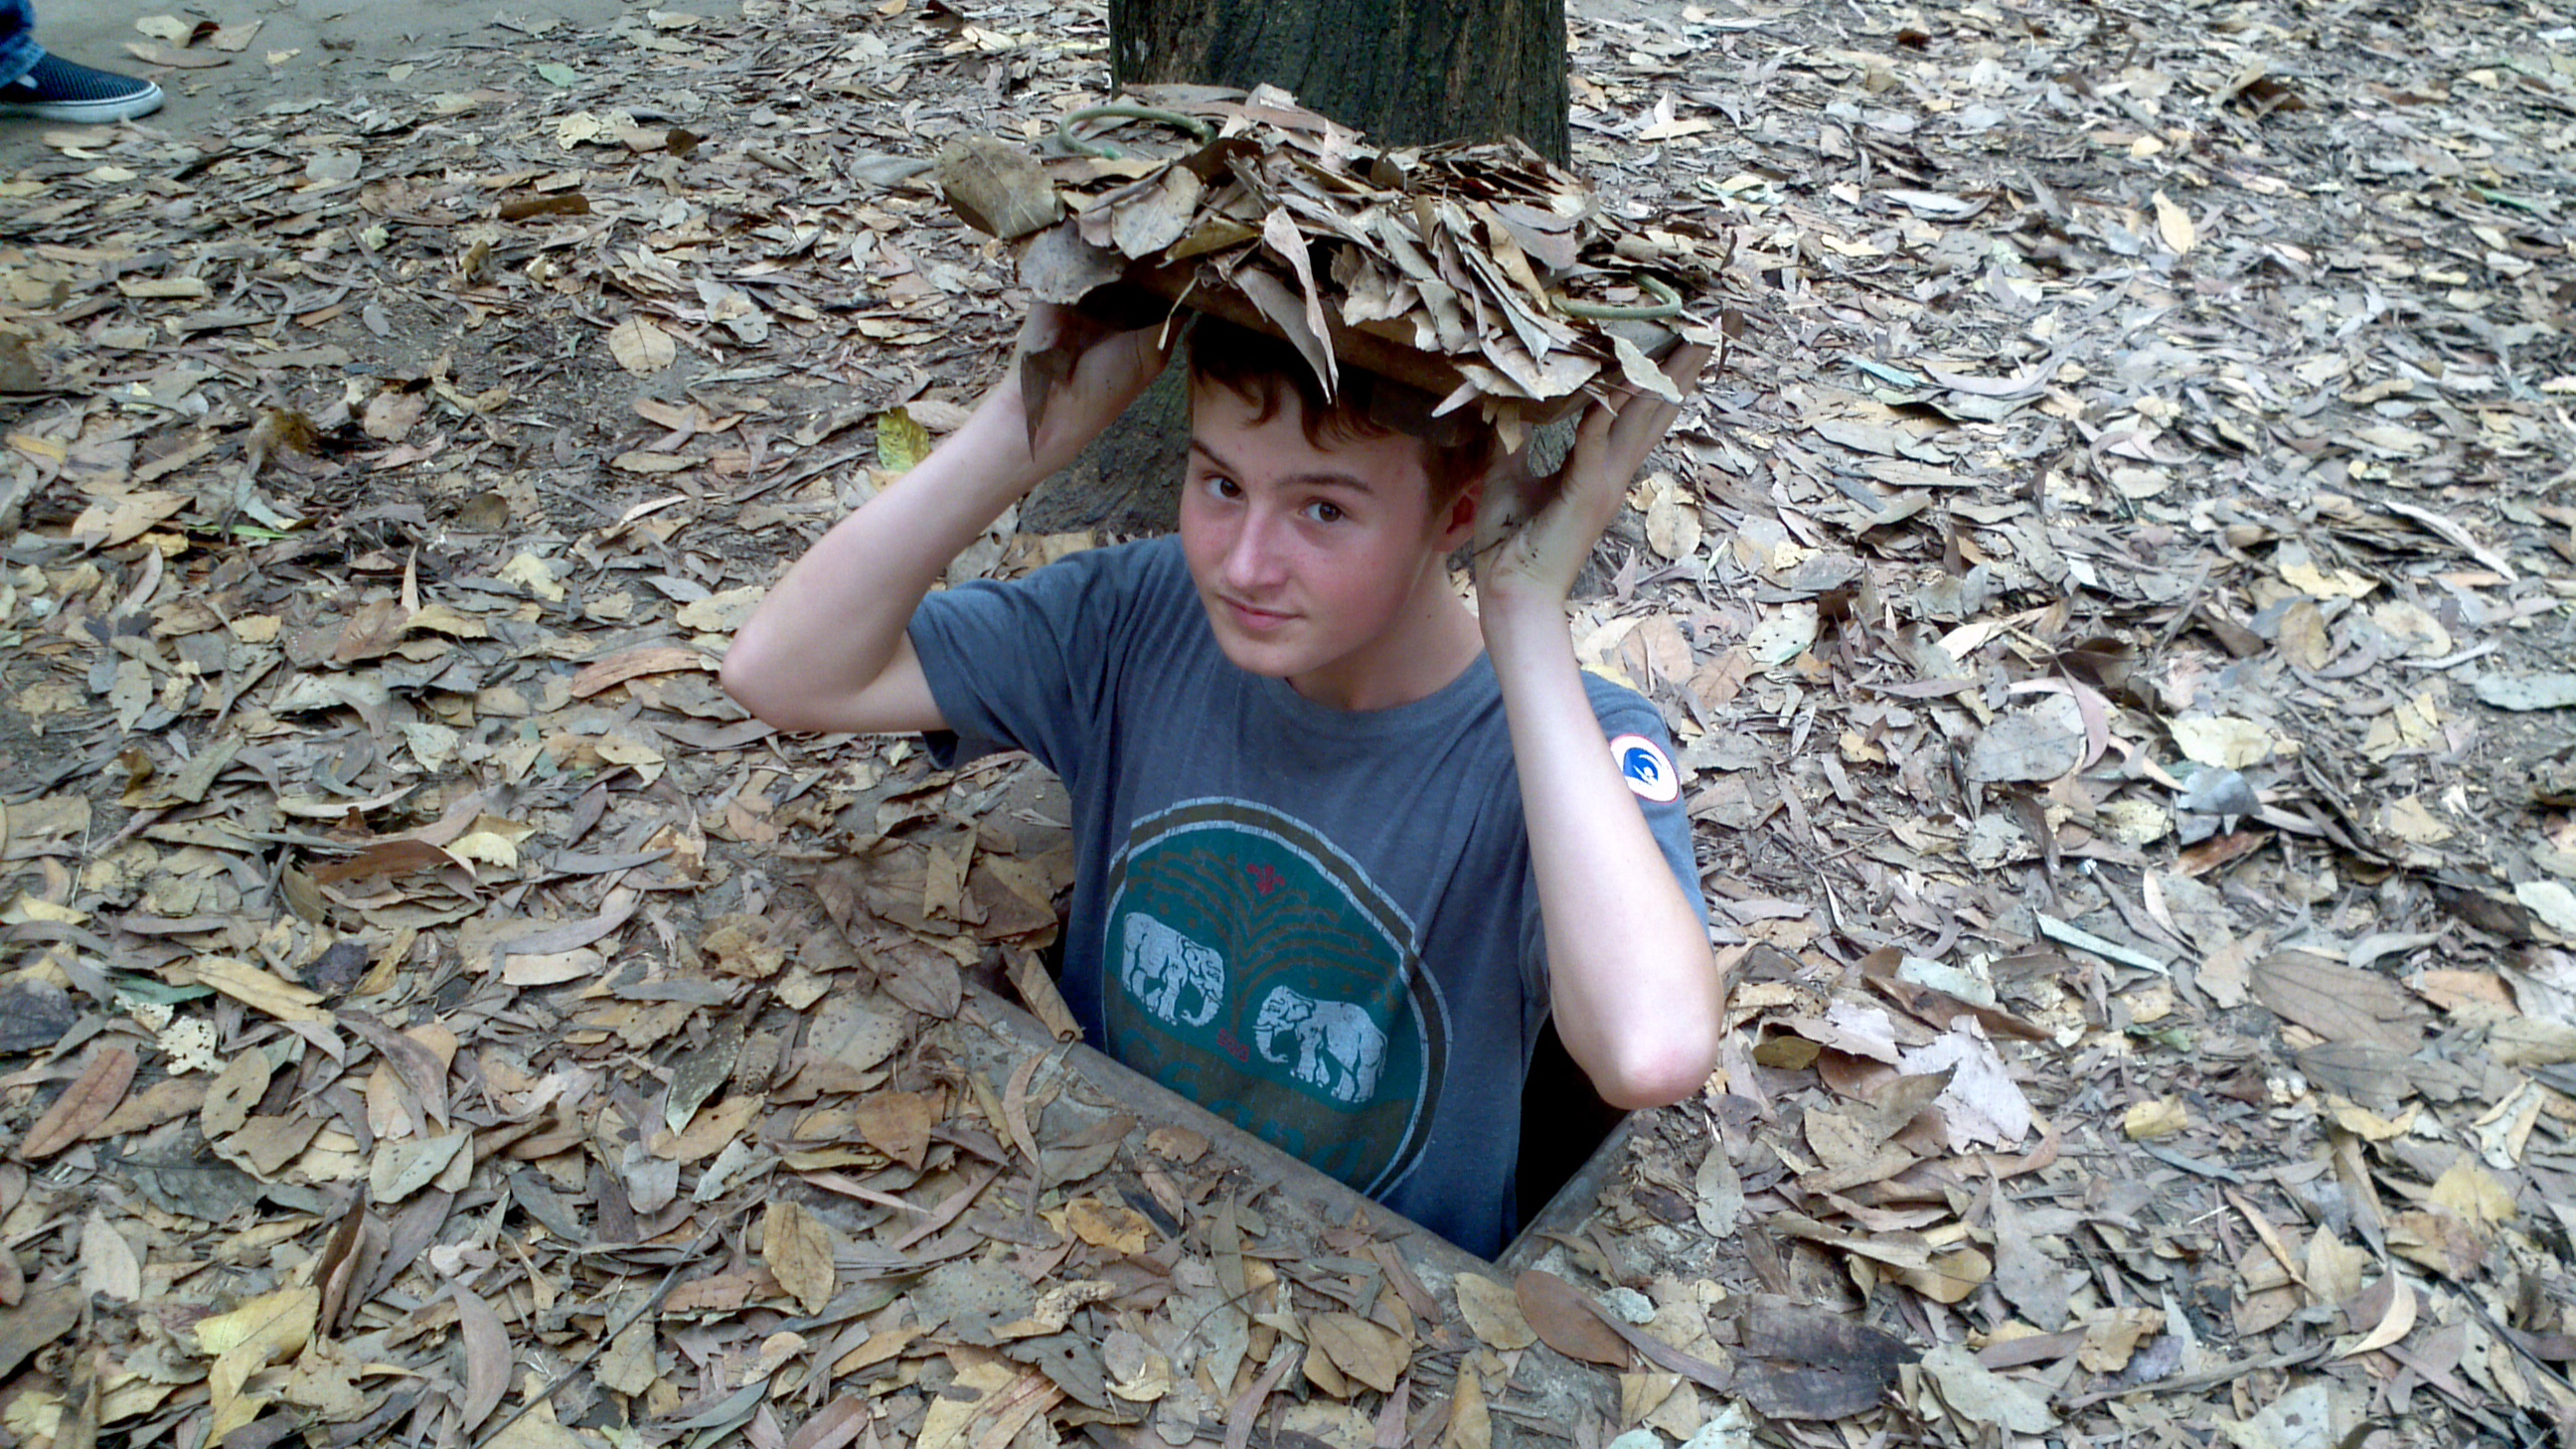 Crawling out of the Chu Chi Tunnels, Vietnam